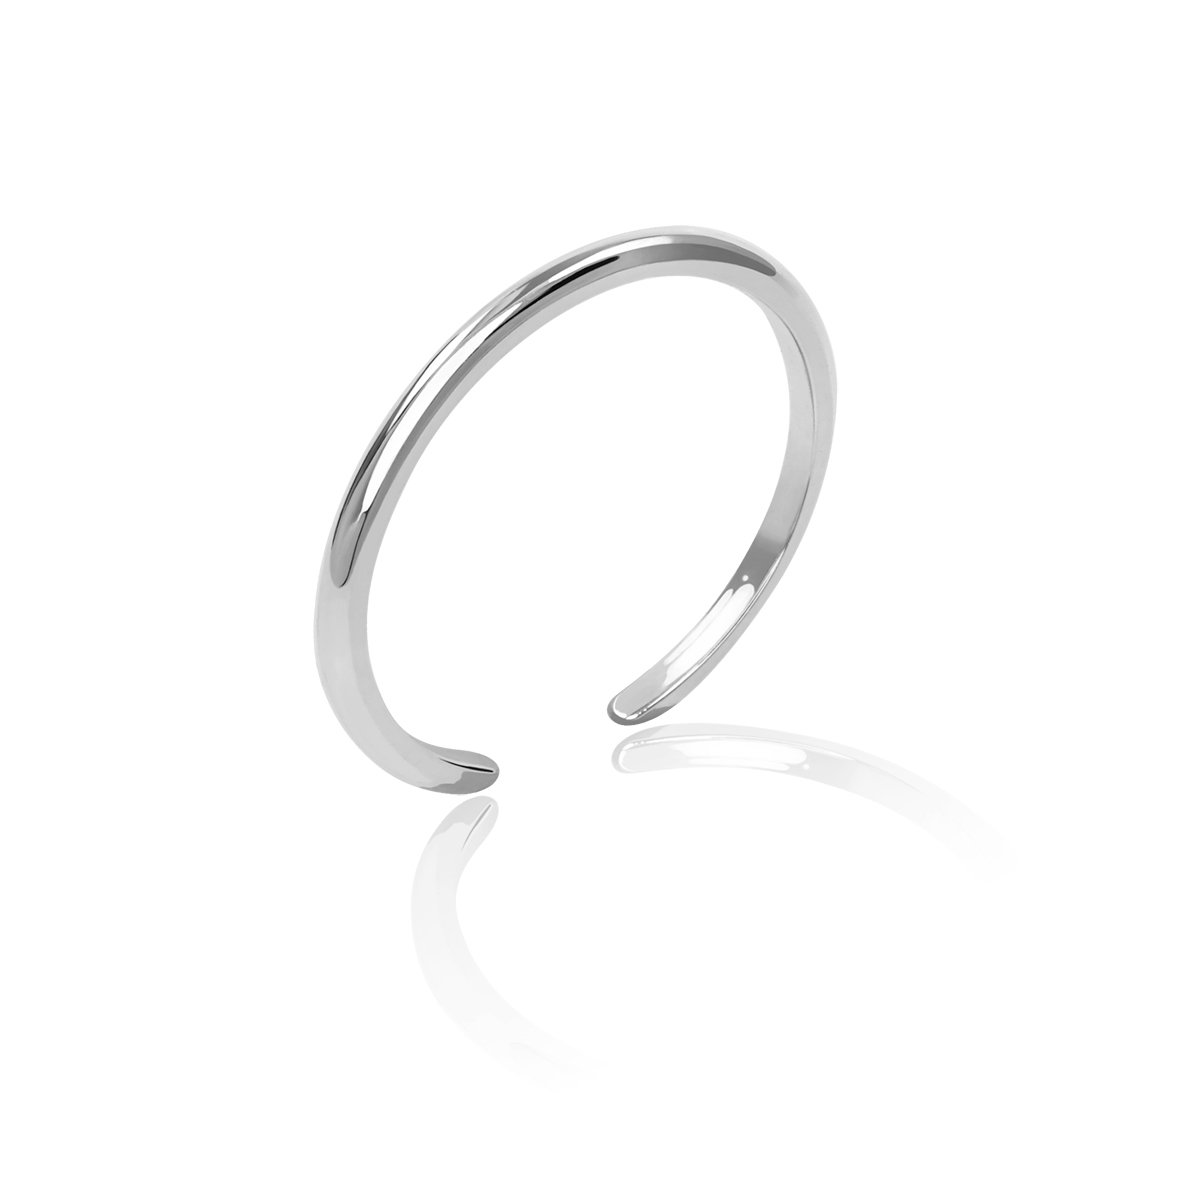 Honolulu Jewelry Company Sterling Silver Band Toe Ring 1mm-4mm